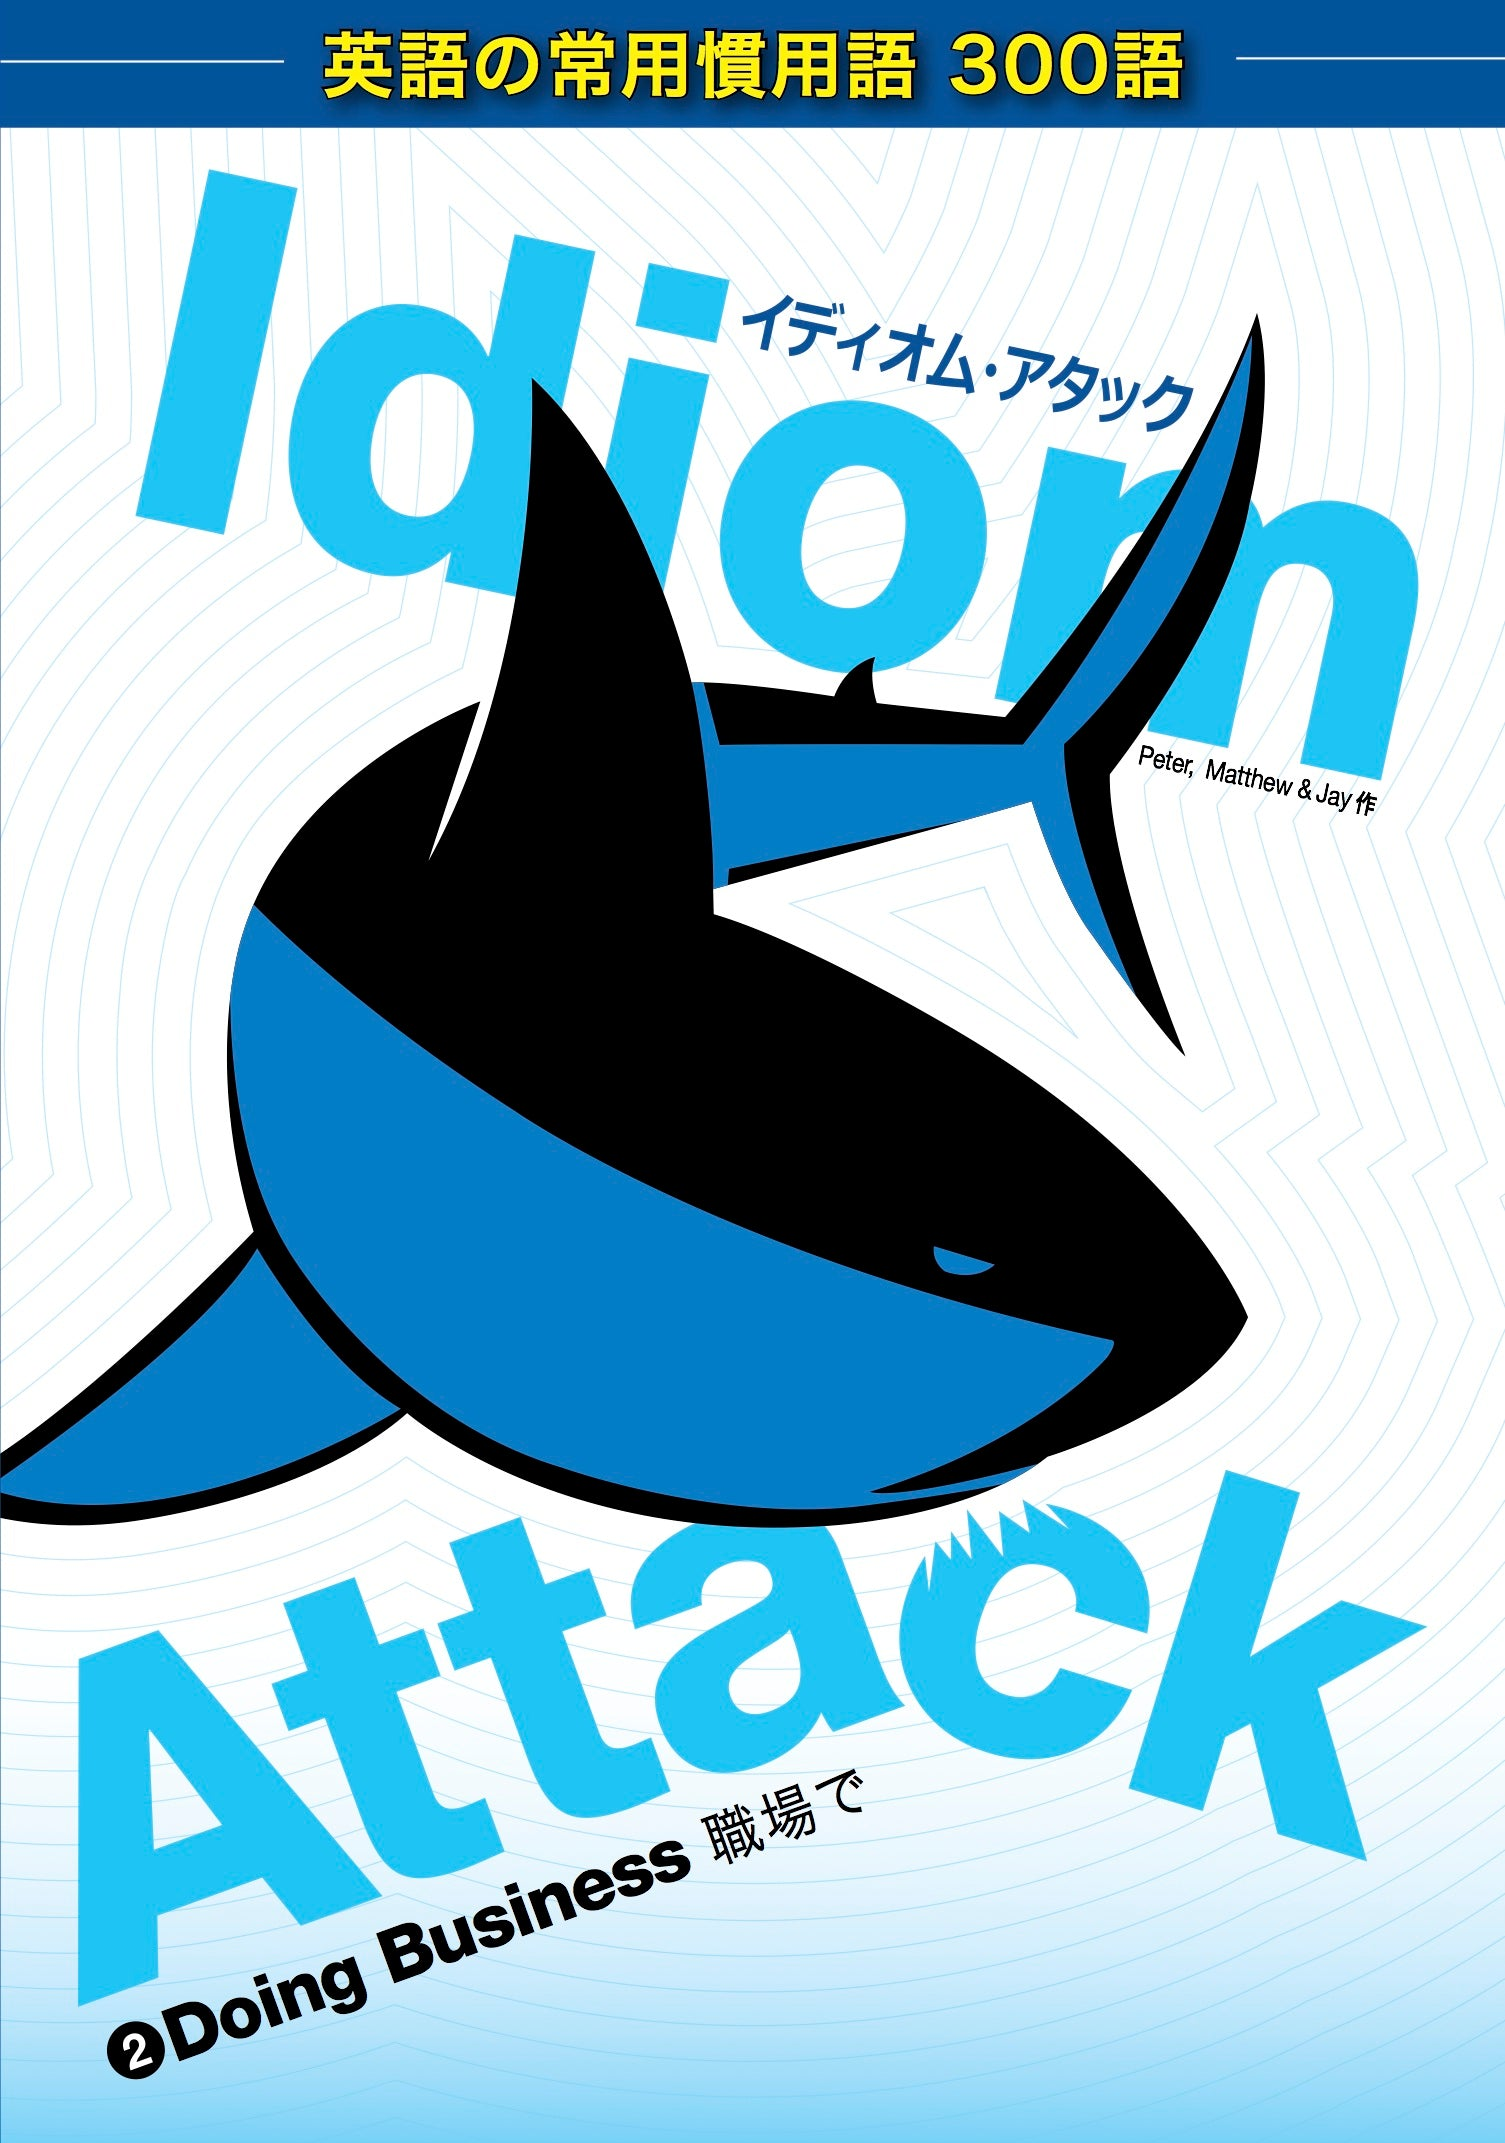 Idiom Attack Vol. 2 - Doing Business (Japanese Edition): イディオム・アタック 2: 職場で : English Idioms for ESL Learners: With 300+ Idioms in 25 Themed Chapters w/ free MP3 at IdiomAttack.com